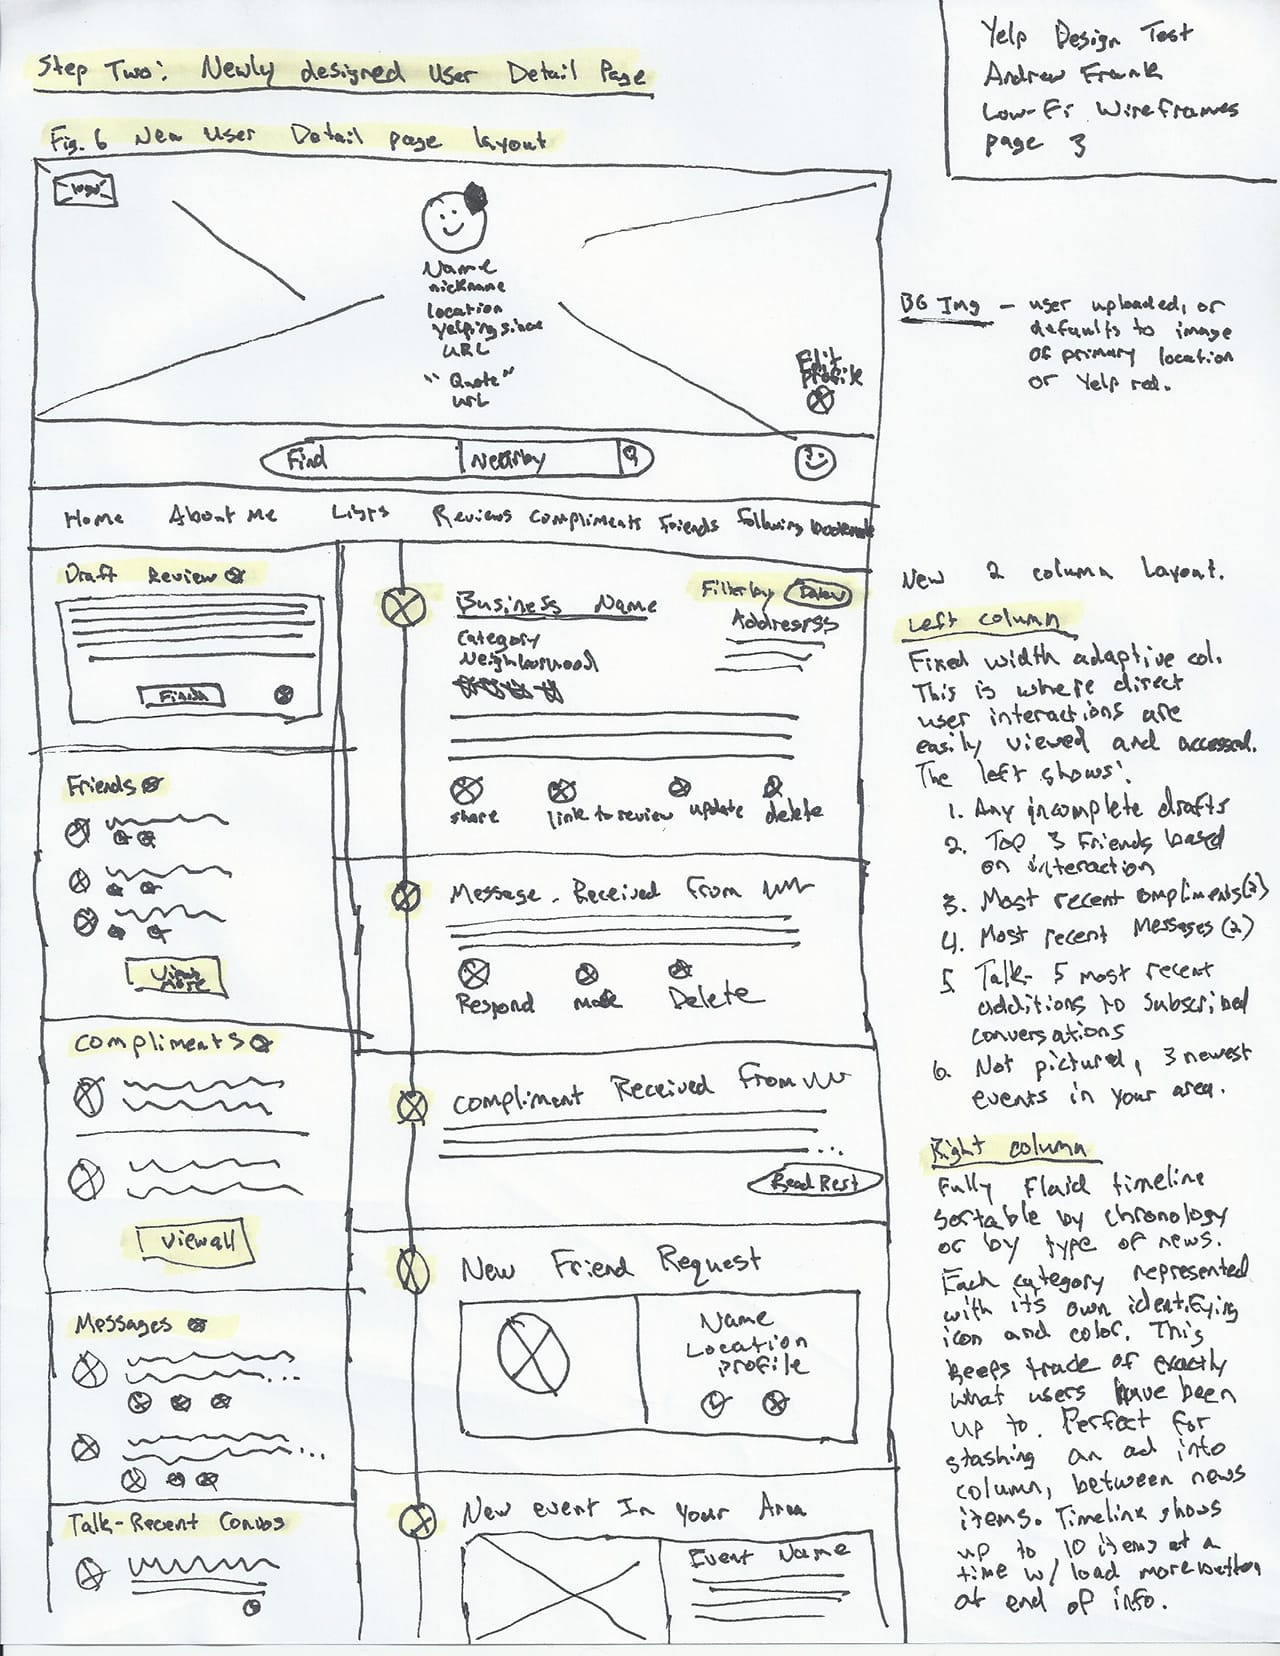 Yelp Low-fi UX Sketch